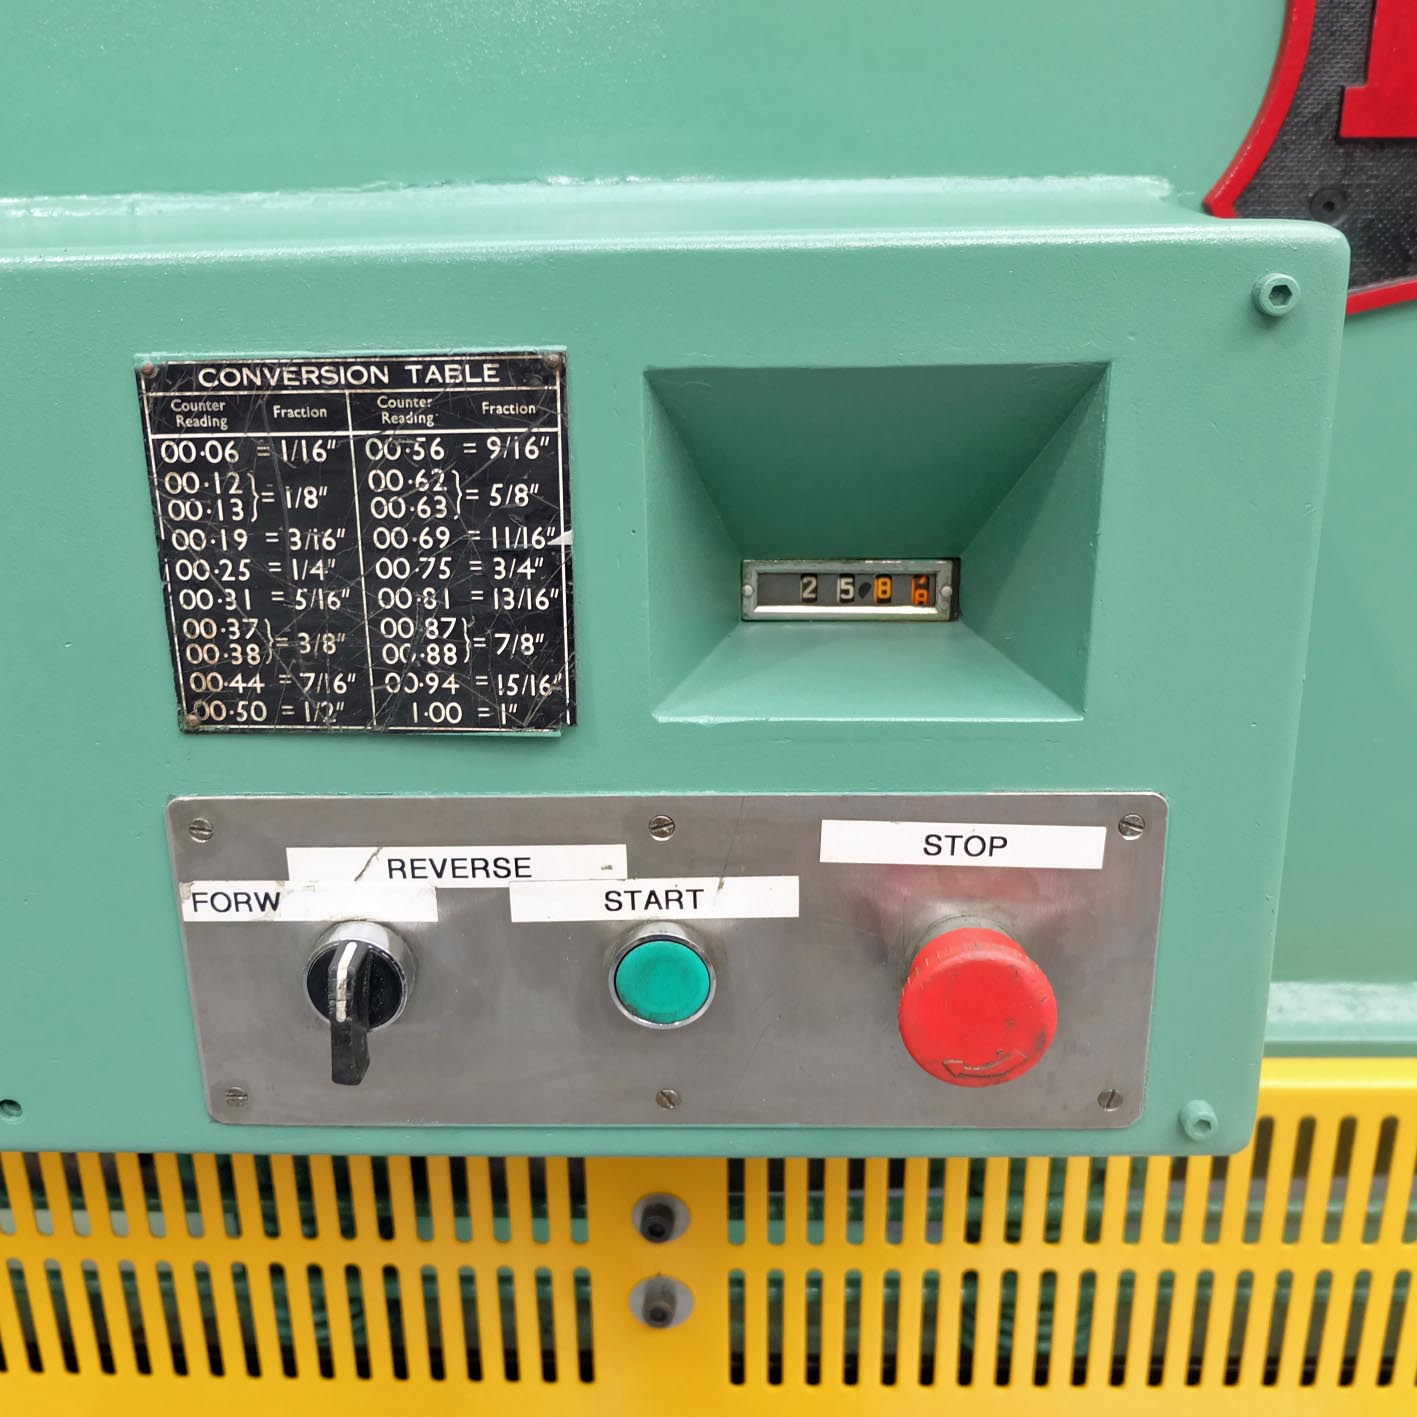 Pearson Type 8 x 25 Hydraulic Guillotine. - Image 3 of 7